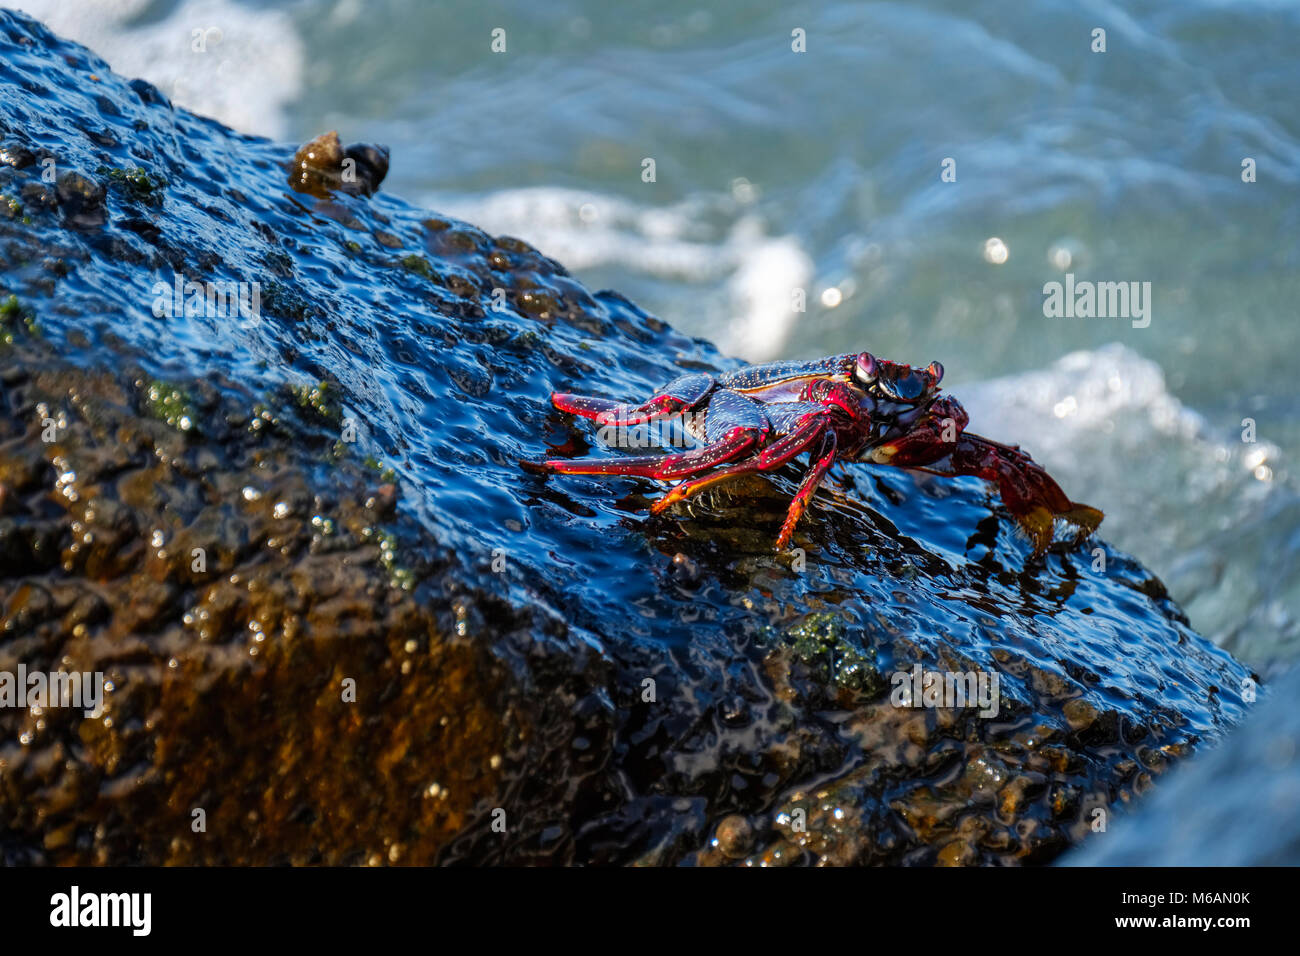 Red rock crab (Grapsus adscensionis) on wet rock, La Gomera, Canary Islands, Spain Stock Photo